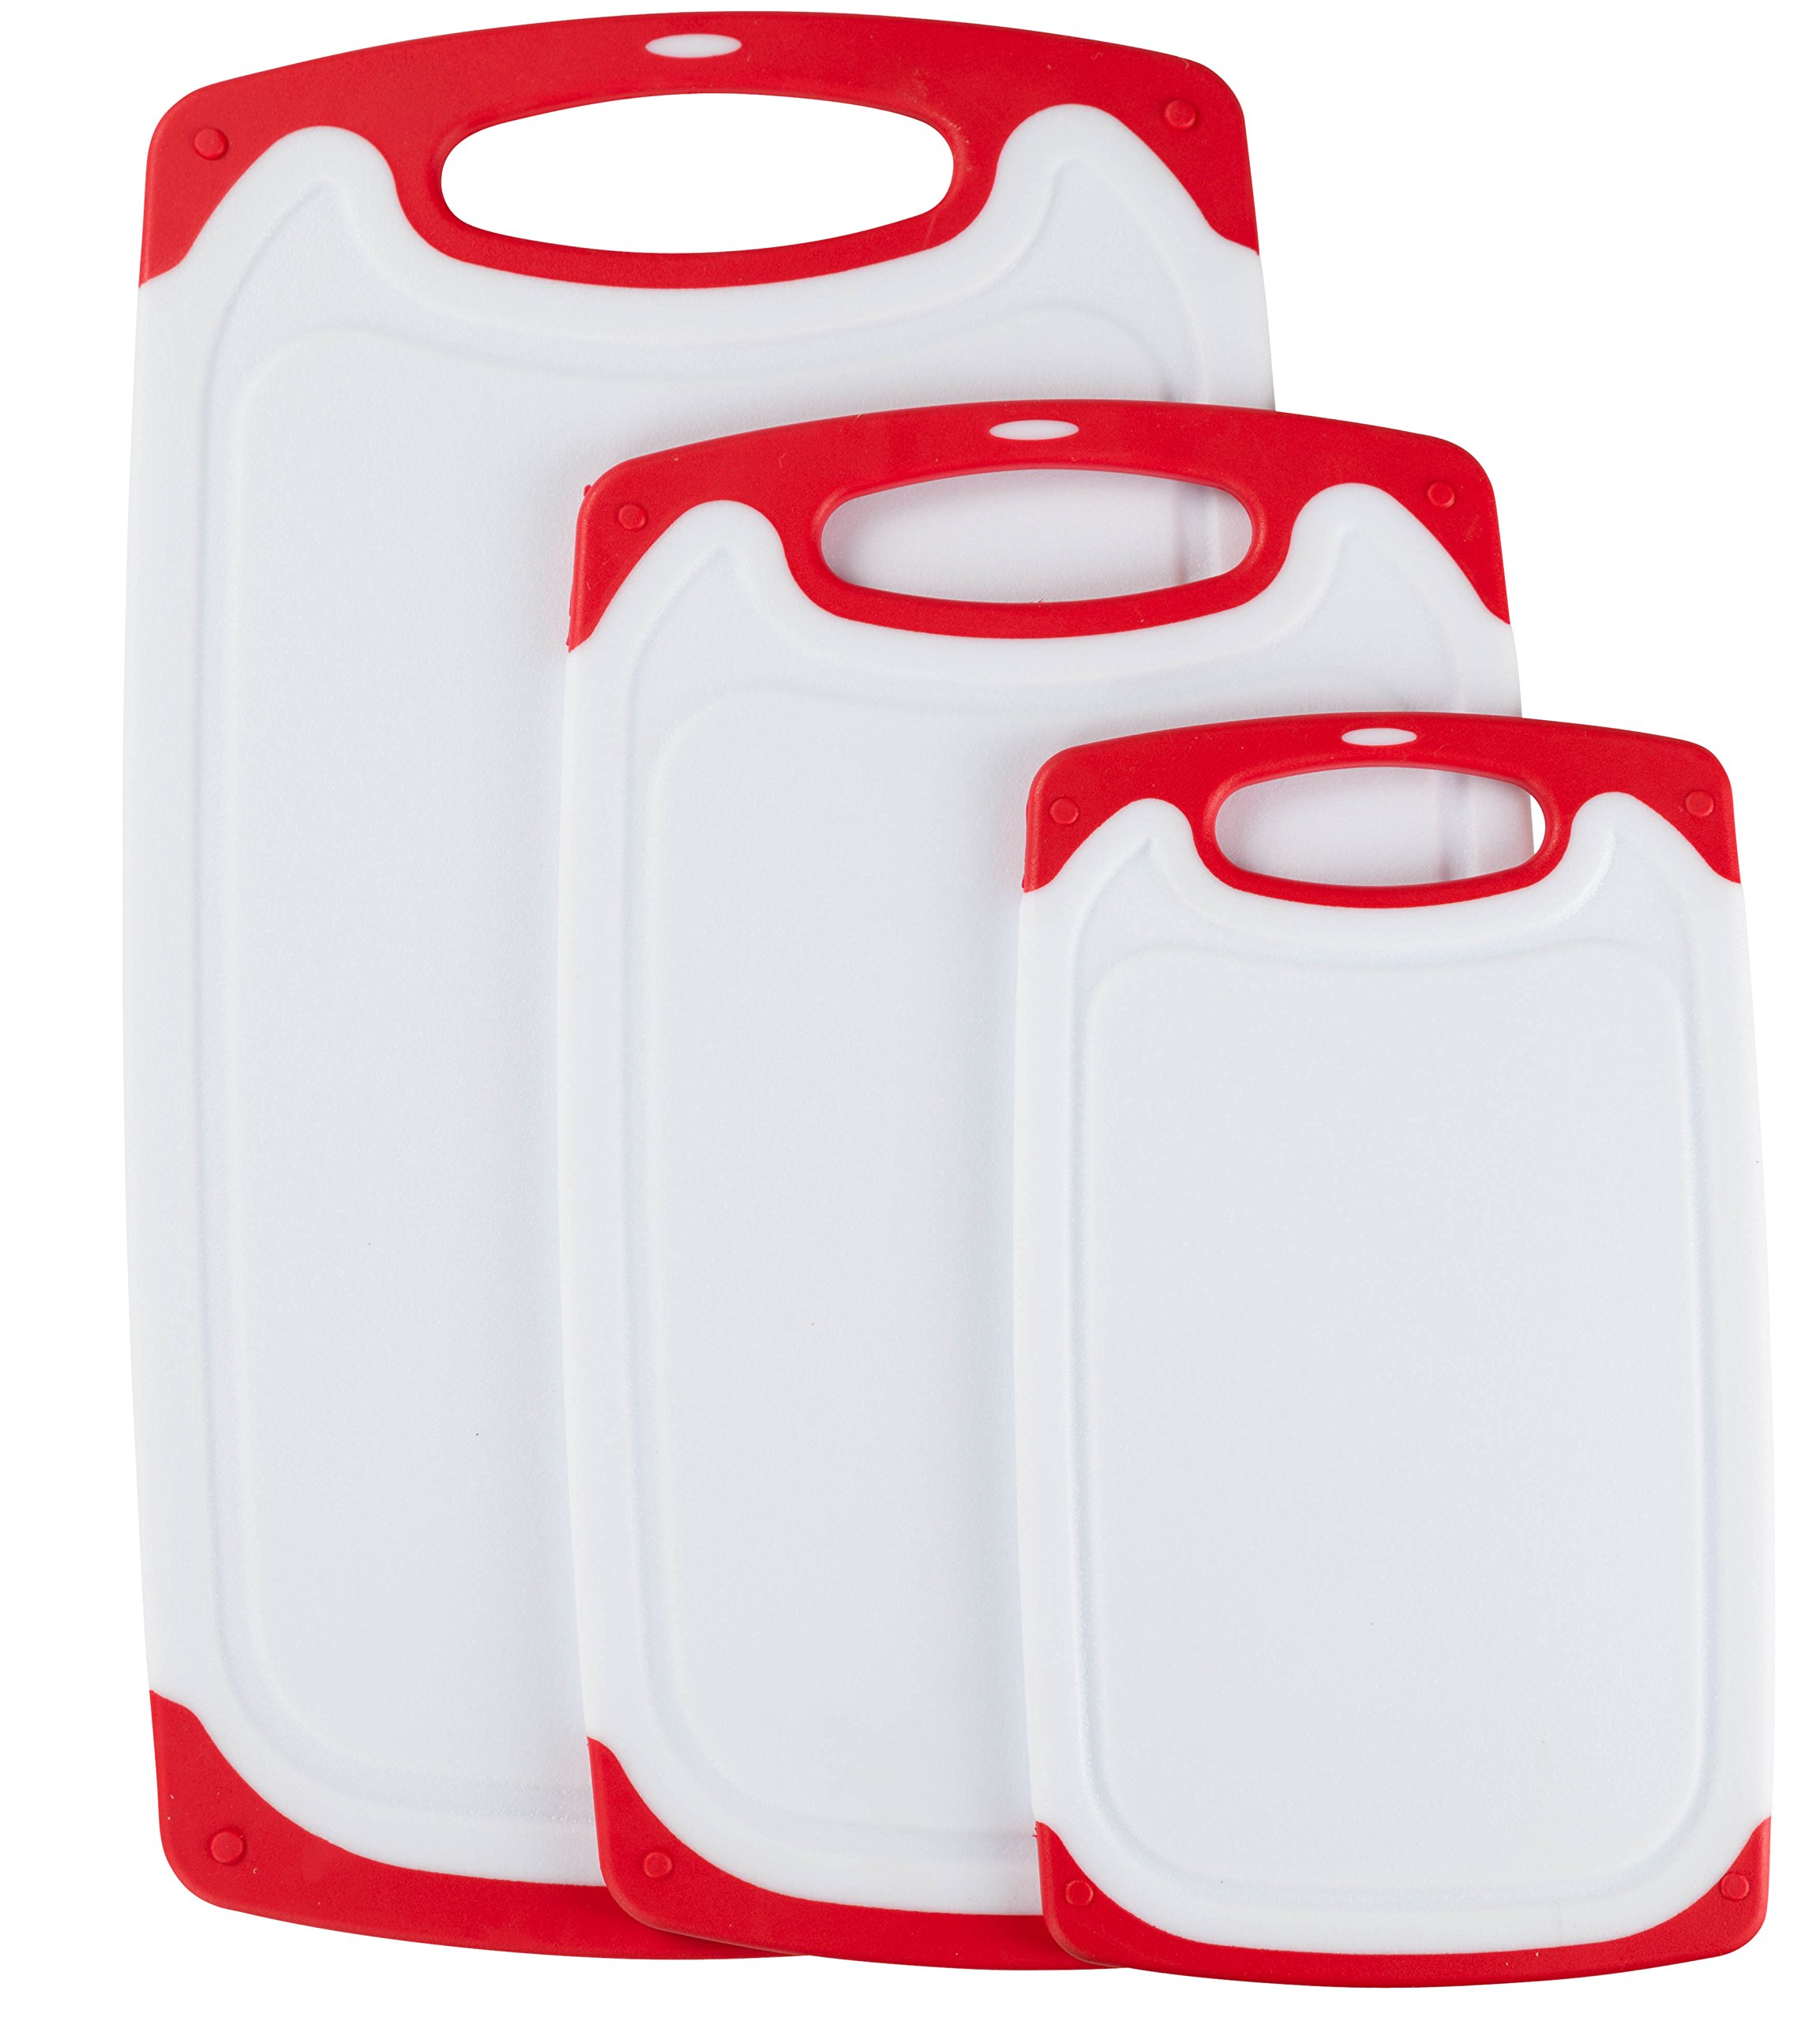 Premium Plastic Cutting Board Set By Wahilulu - 3 pc Non-Slip Kitchen Essential Chopping Board Kit - Dishwasher Safe - Non-Slip Rubber Ends & Handles - Anti-Drip Juice Groove Lip (Large, Red)